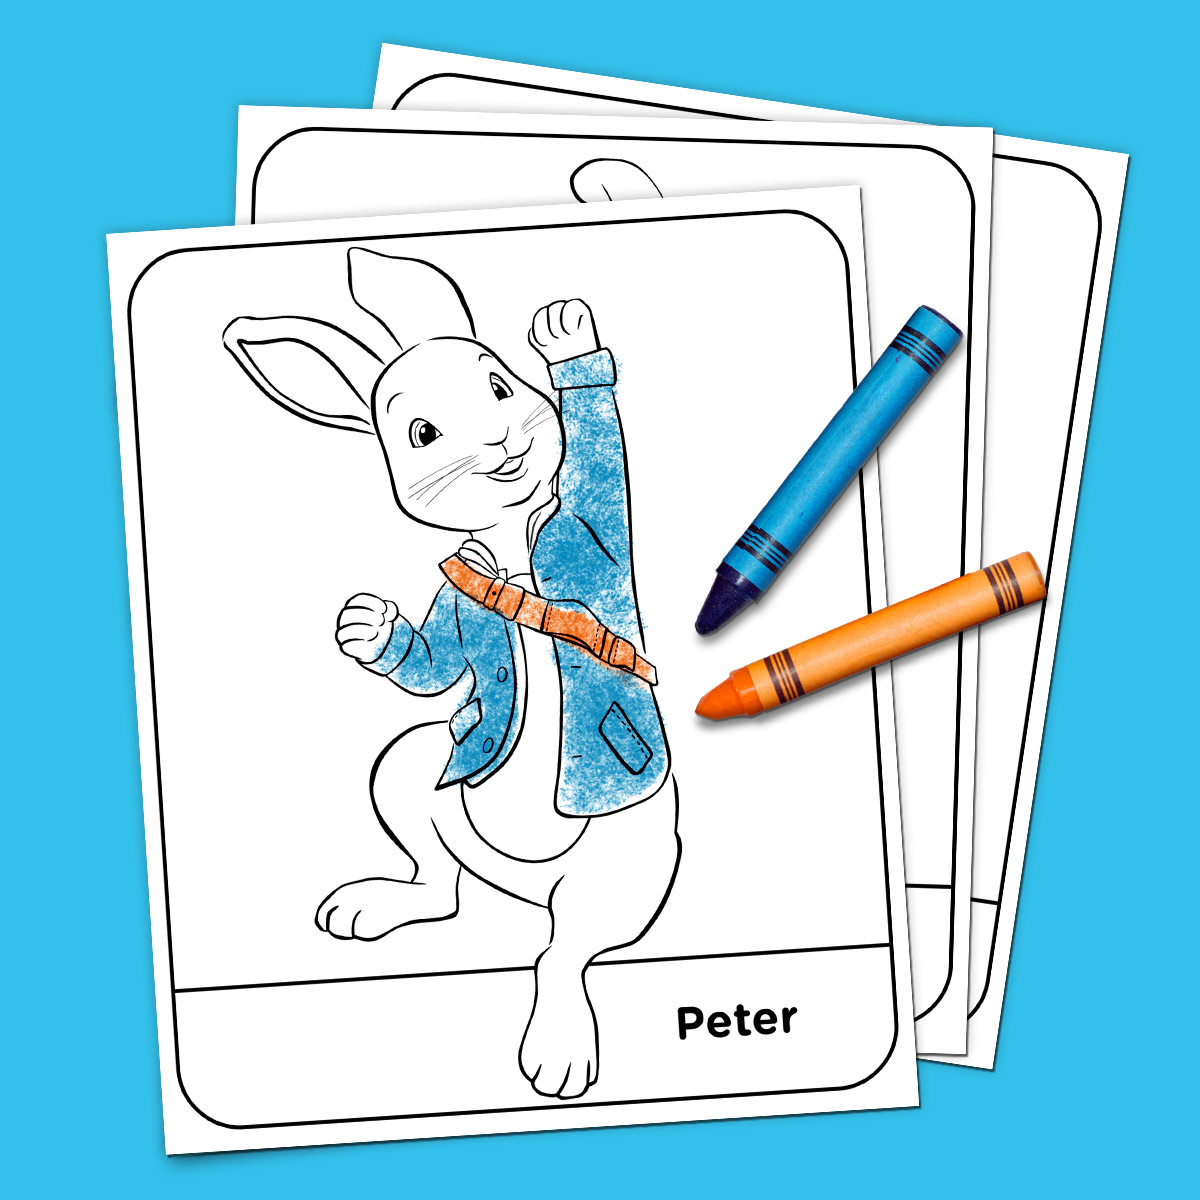 Peter Rabbit Coloring Pack | Nickelodeon Parents - Free Printable Peter Rabbit Coloring Pages